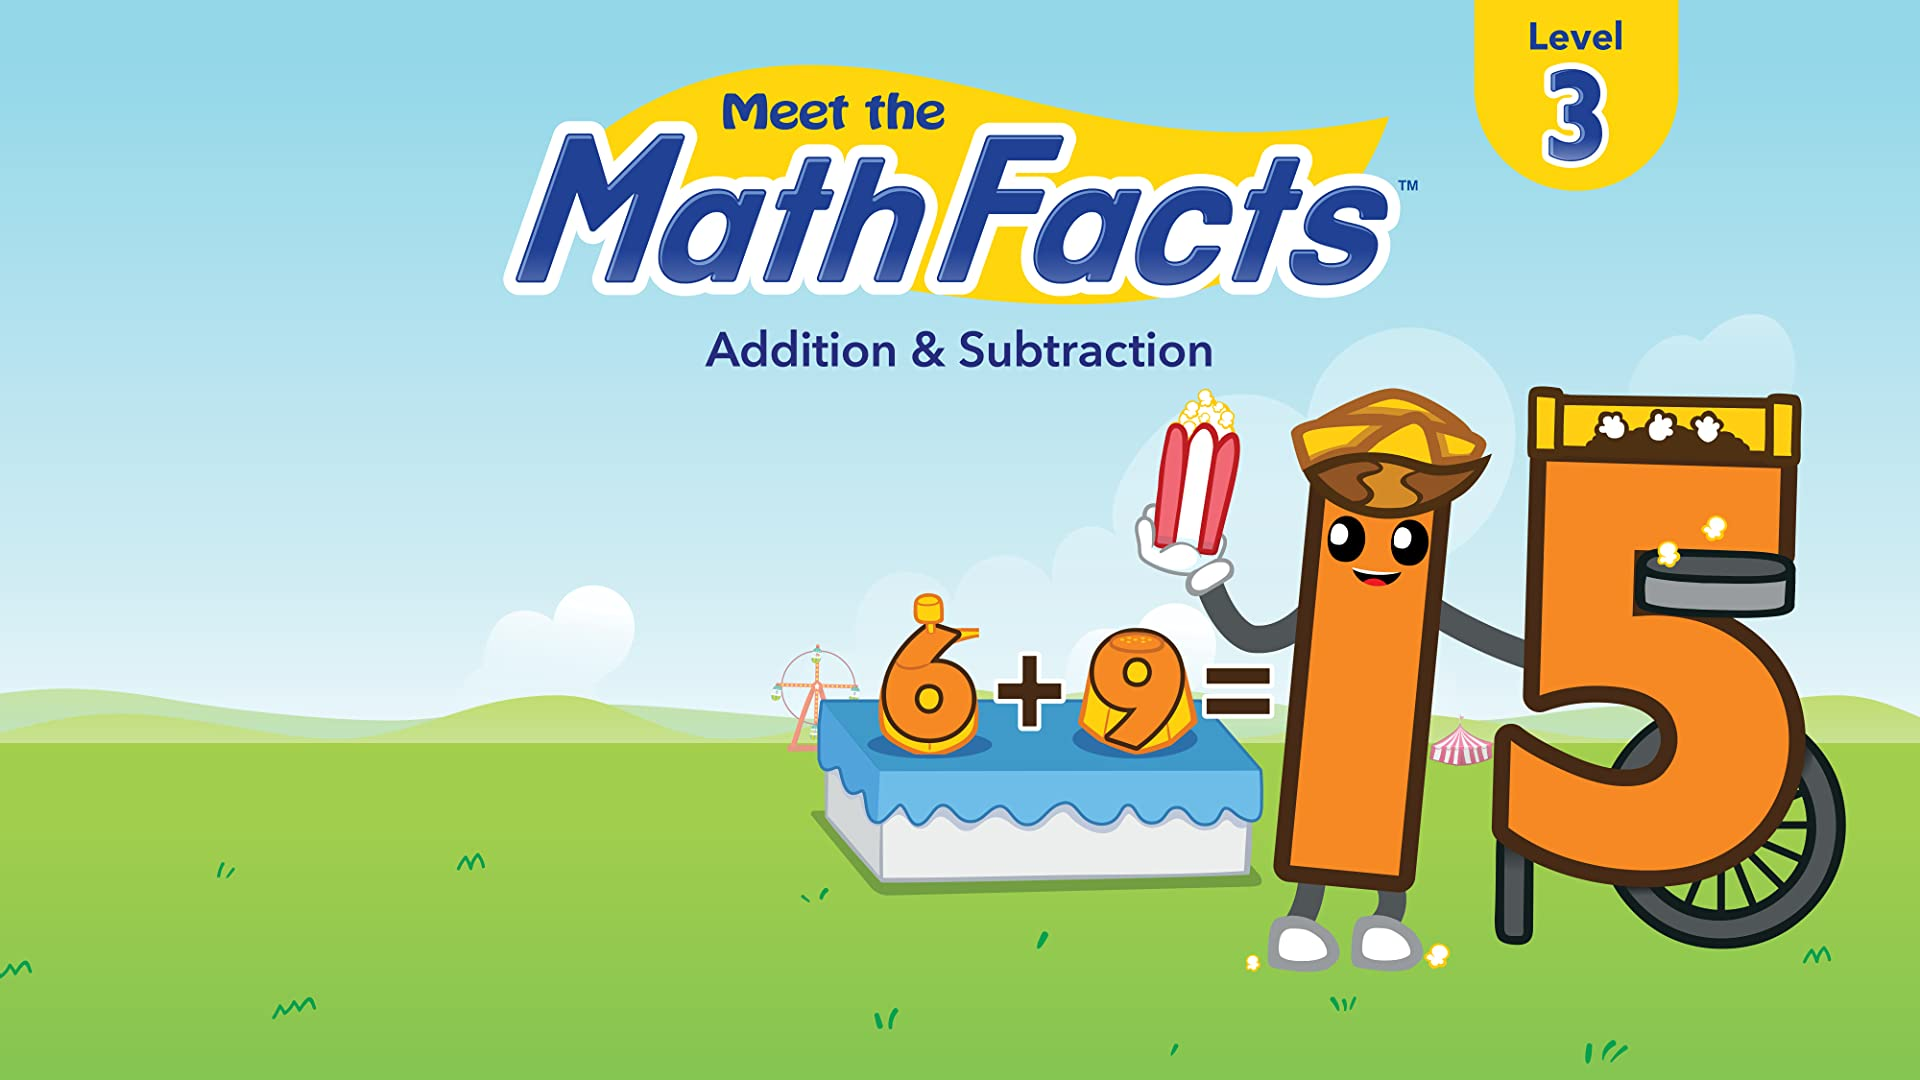 Meet the Math Facts - Addition & Subtraction Level 3